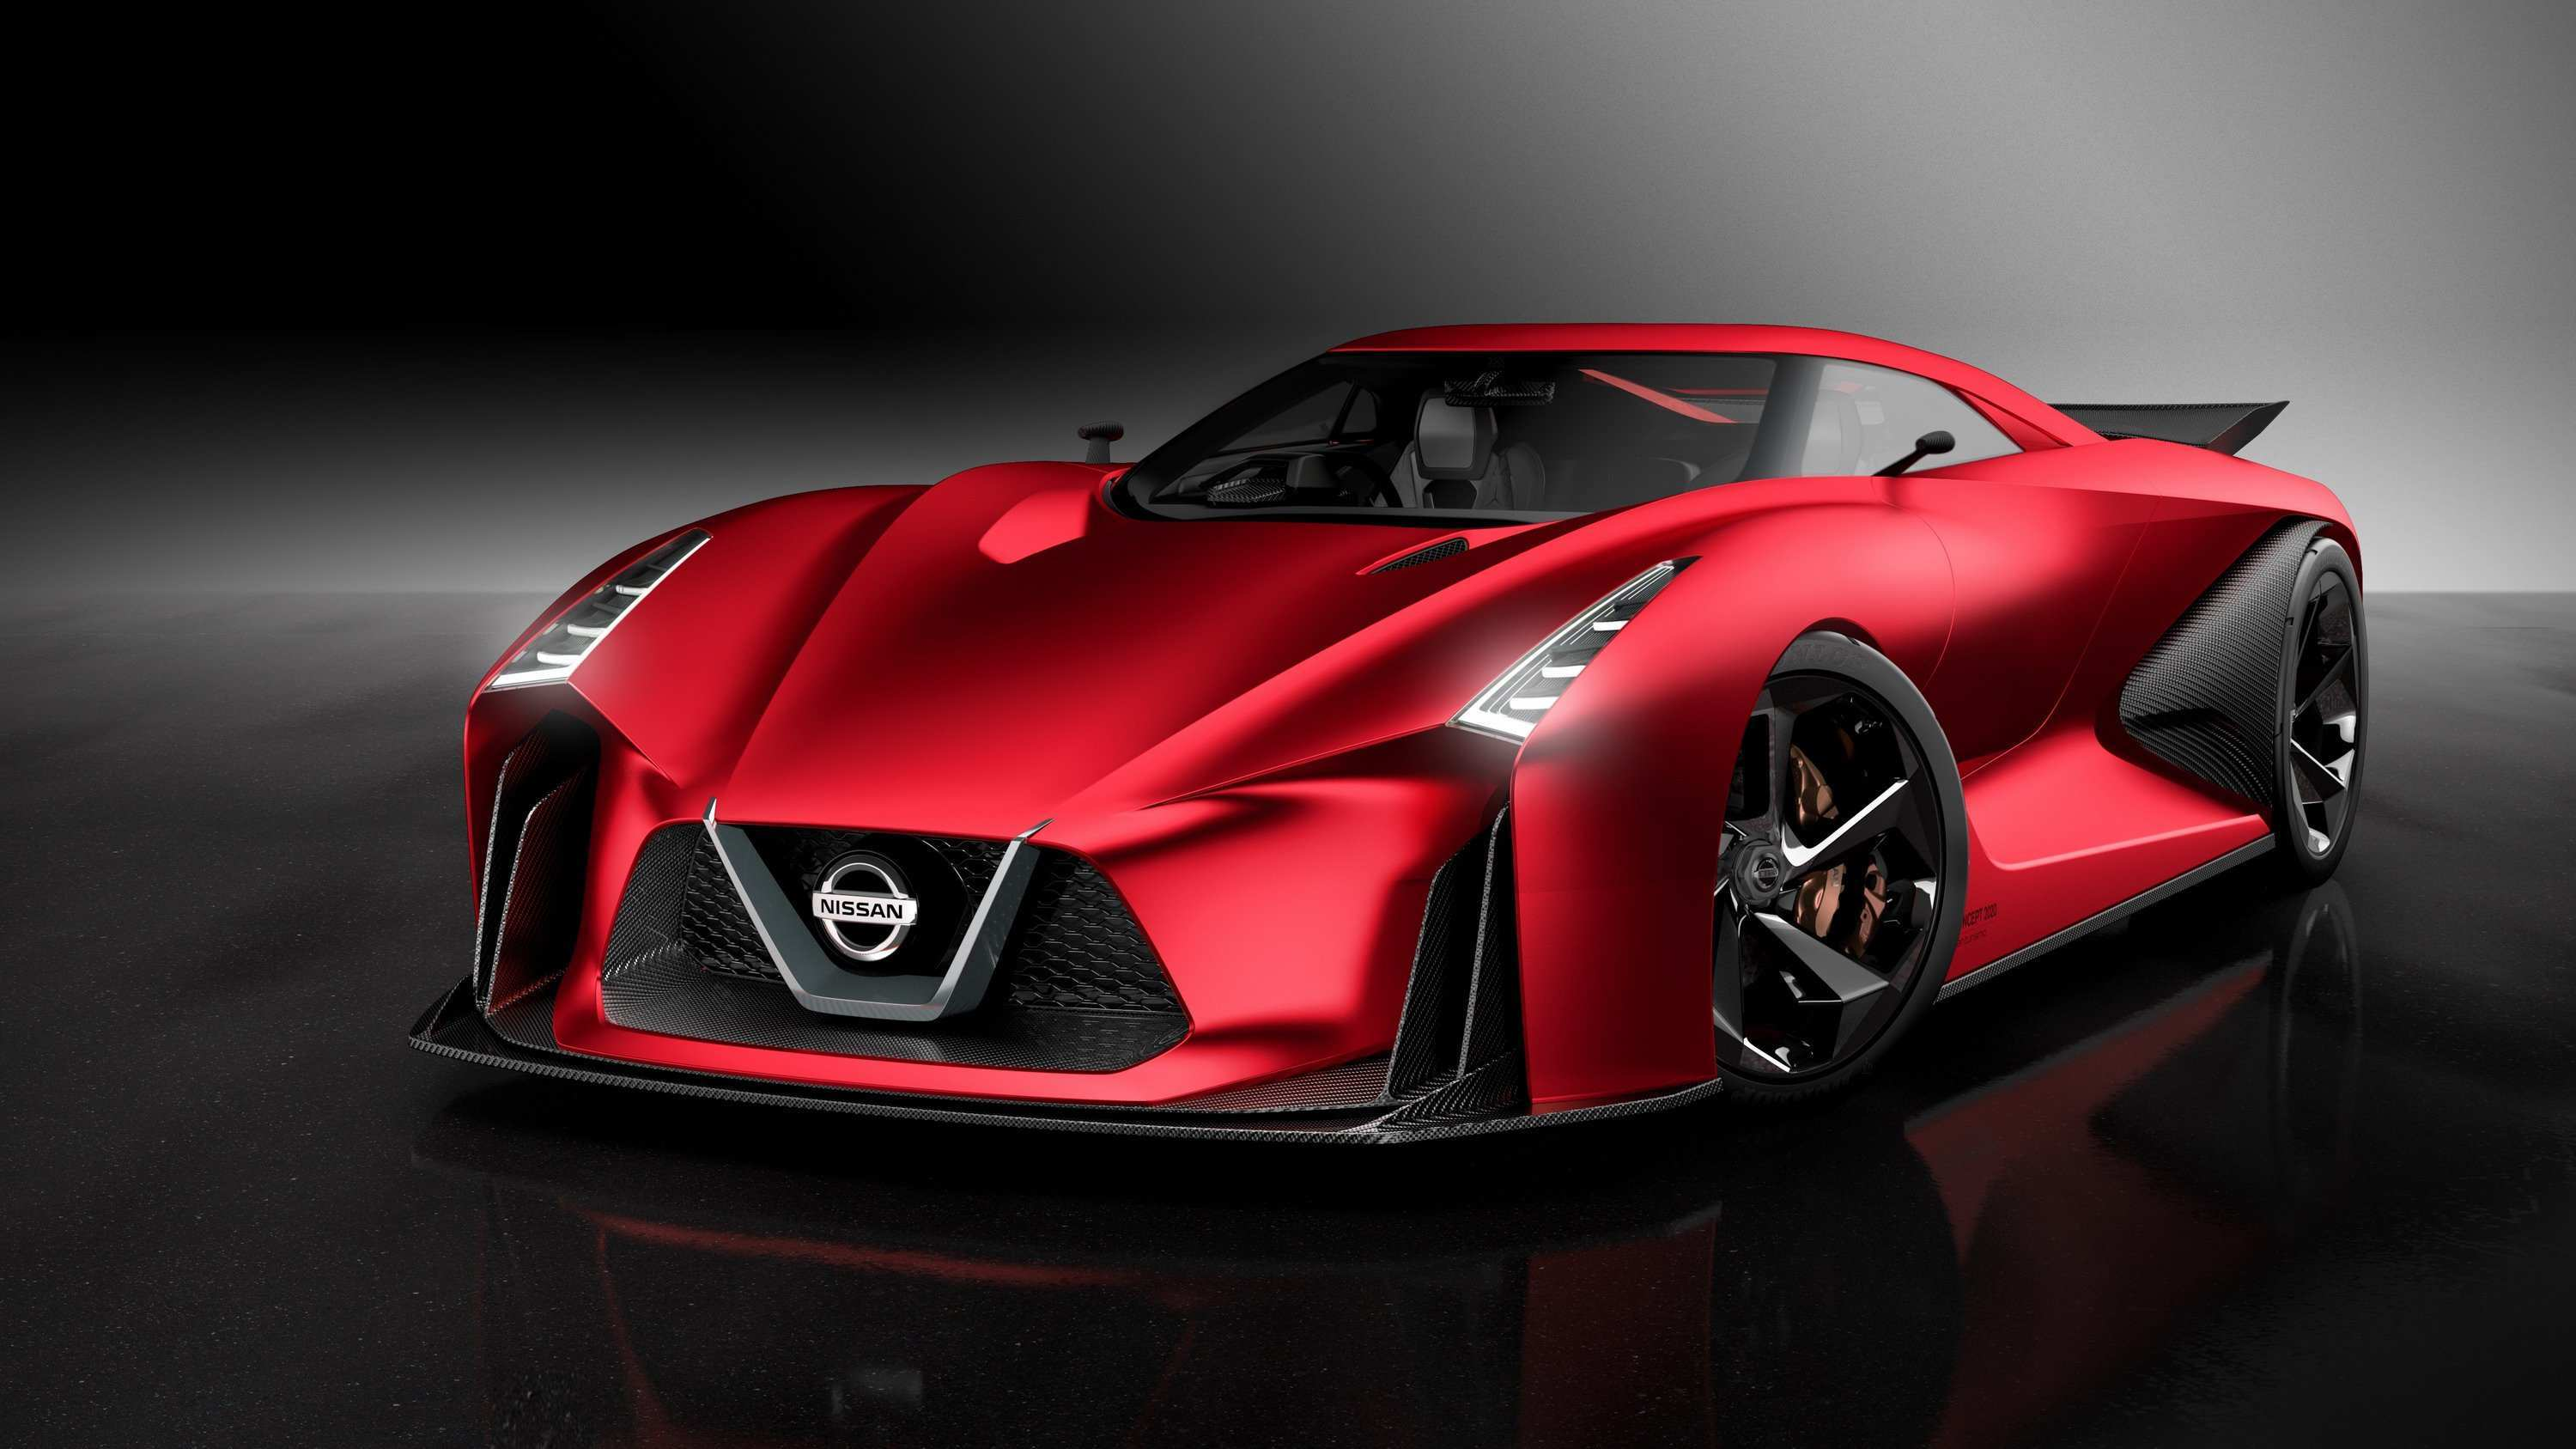 26 New 2020 Nissan Gtr Horsepower Photos by 2020 Nissan Gtr Horsepower